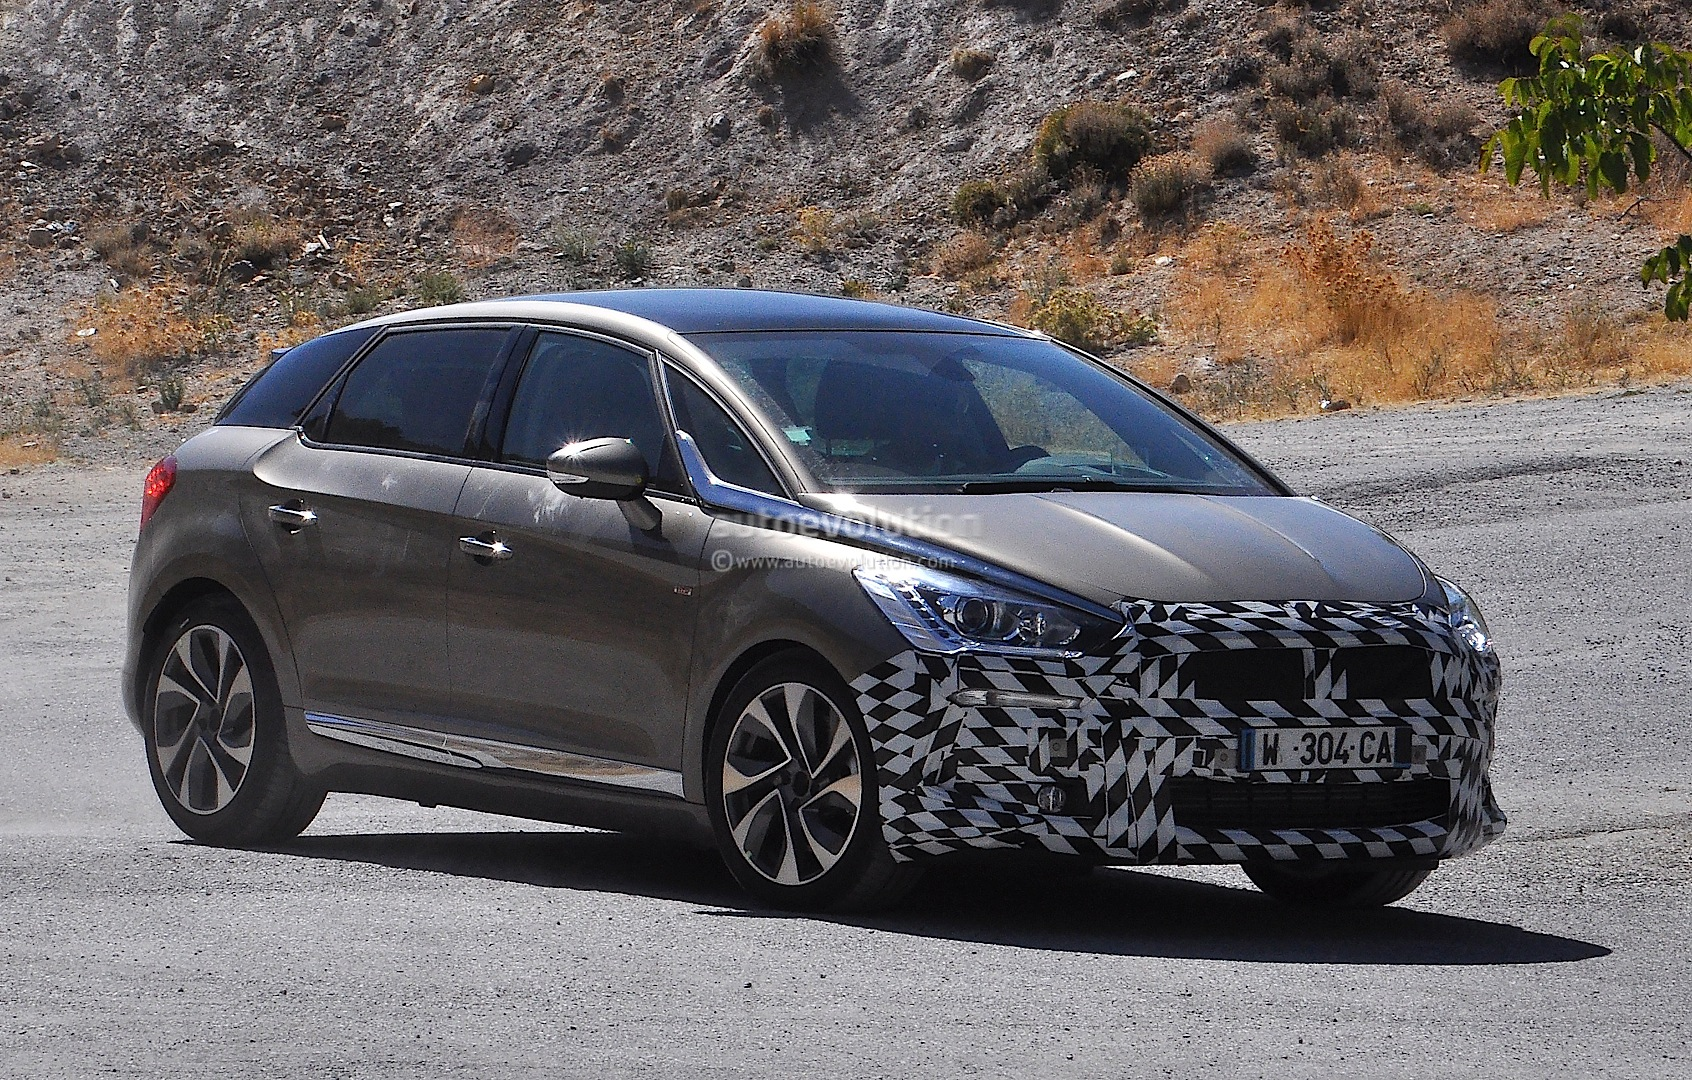 Citroen DS Facelift Spied For The First Time